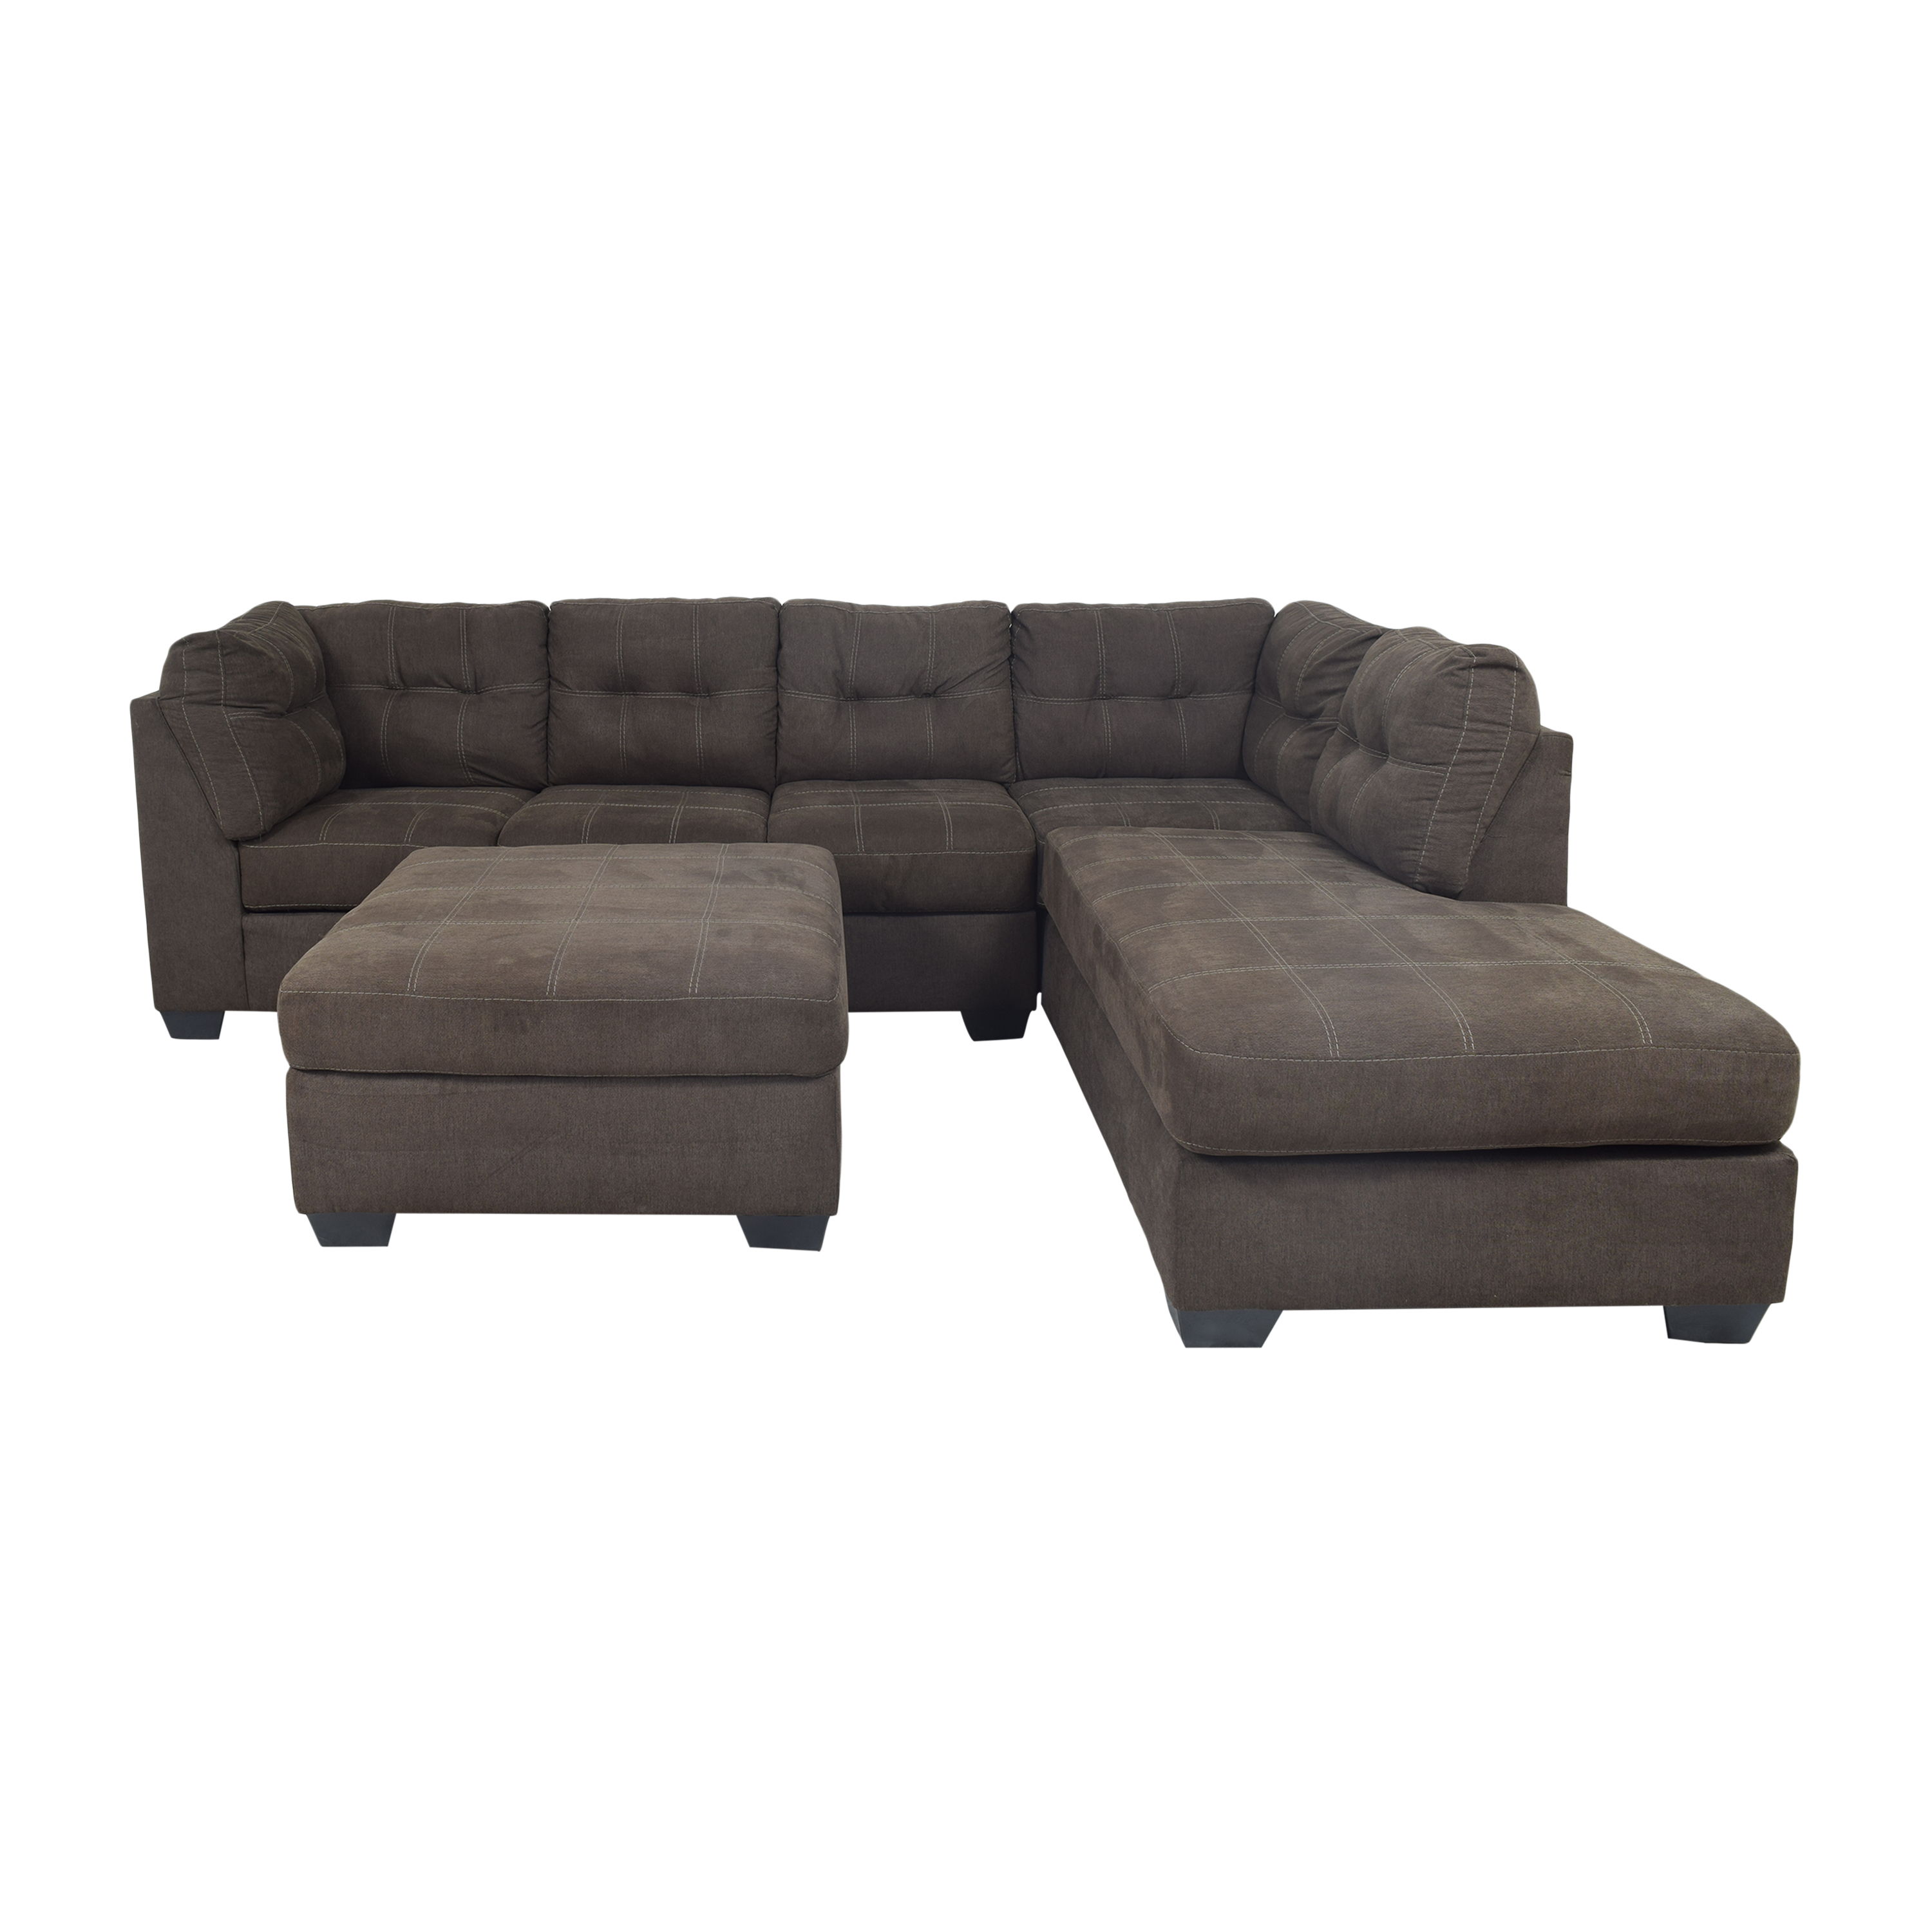 Ashley Furniture Ashley Furniture Pitkin Two-Piece Chaise Sectional with Ottoman second hand